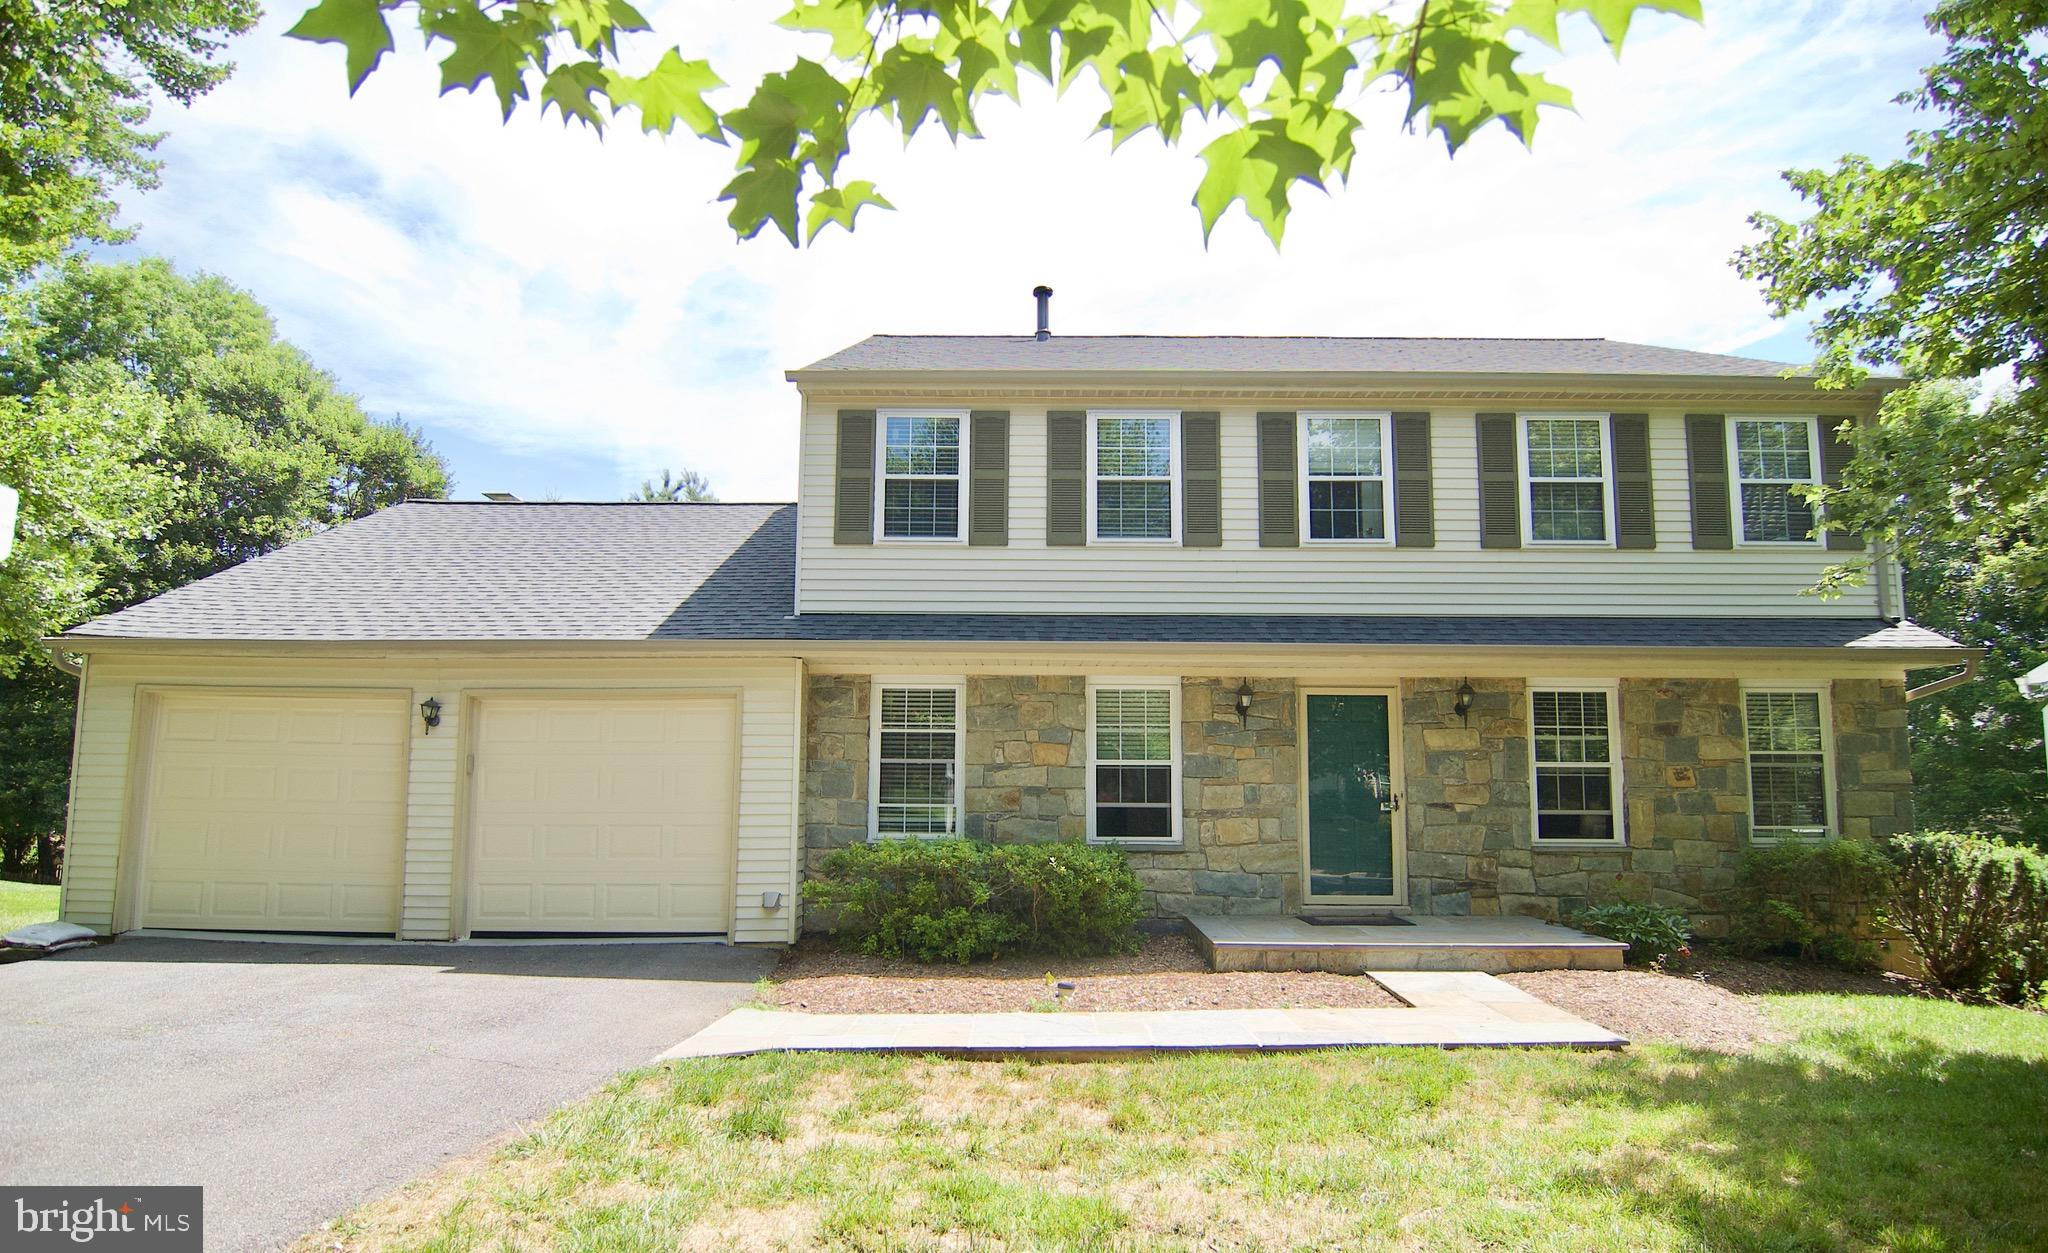 15429 INDIANOLA DRIVE, ROCKVILLE, MD 20855